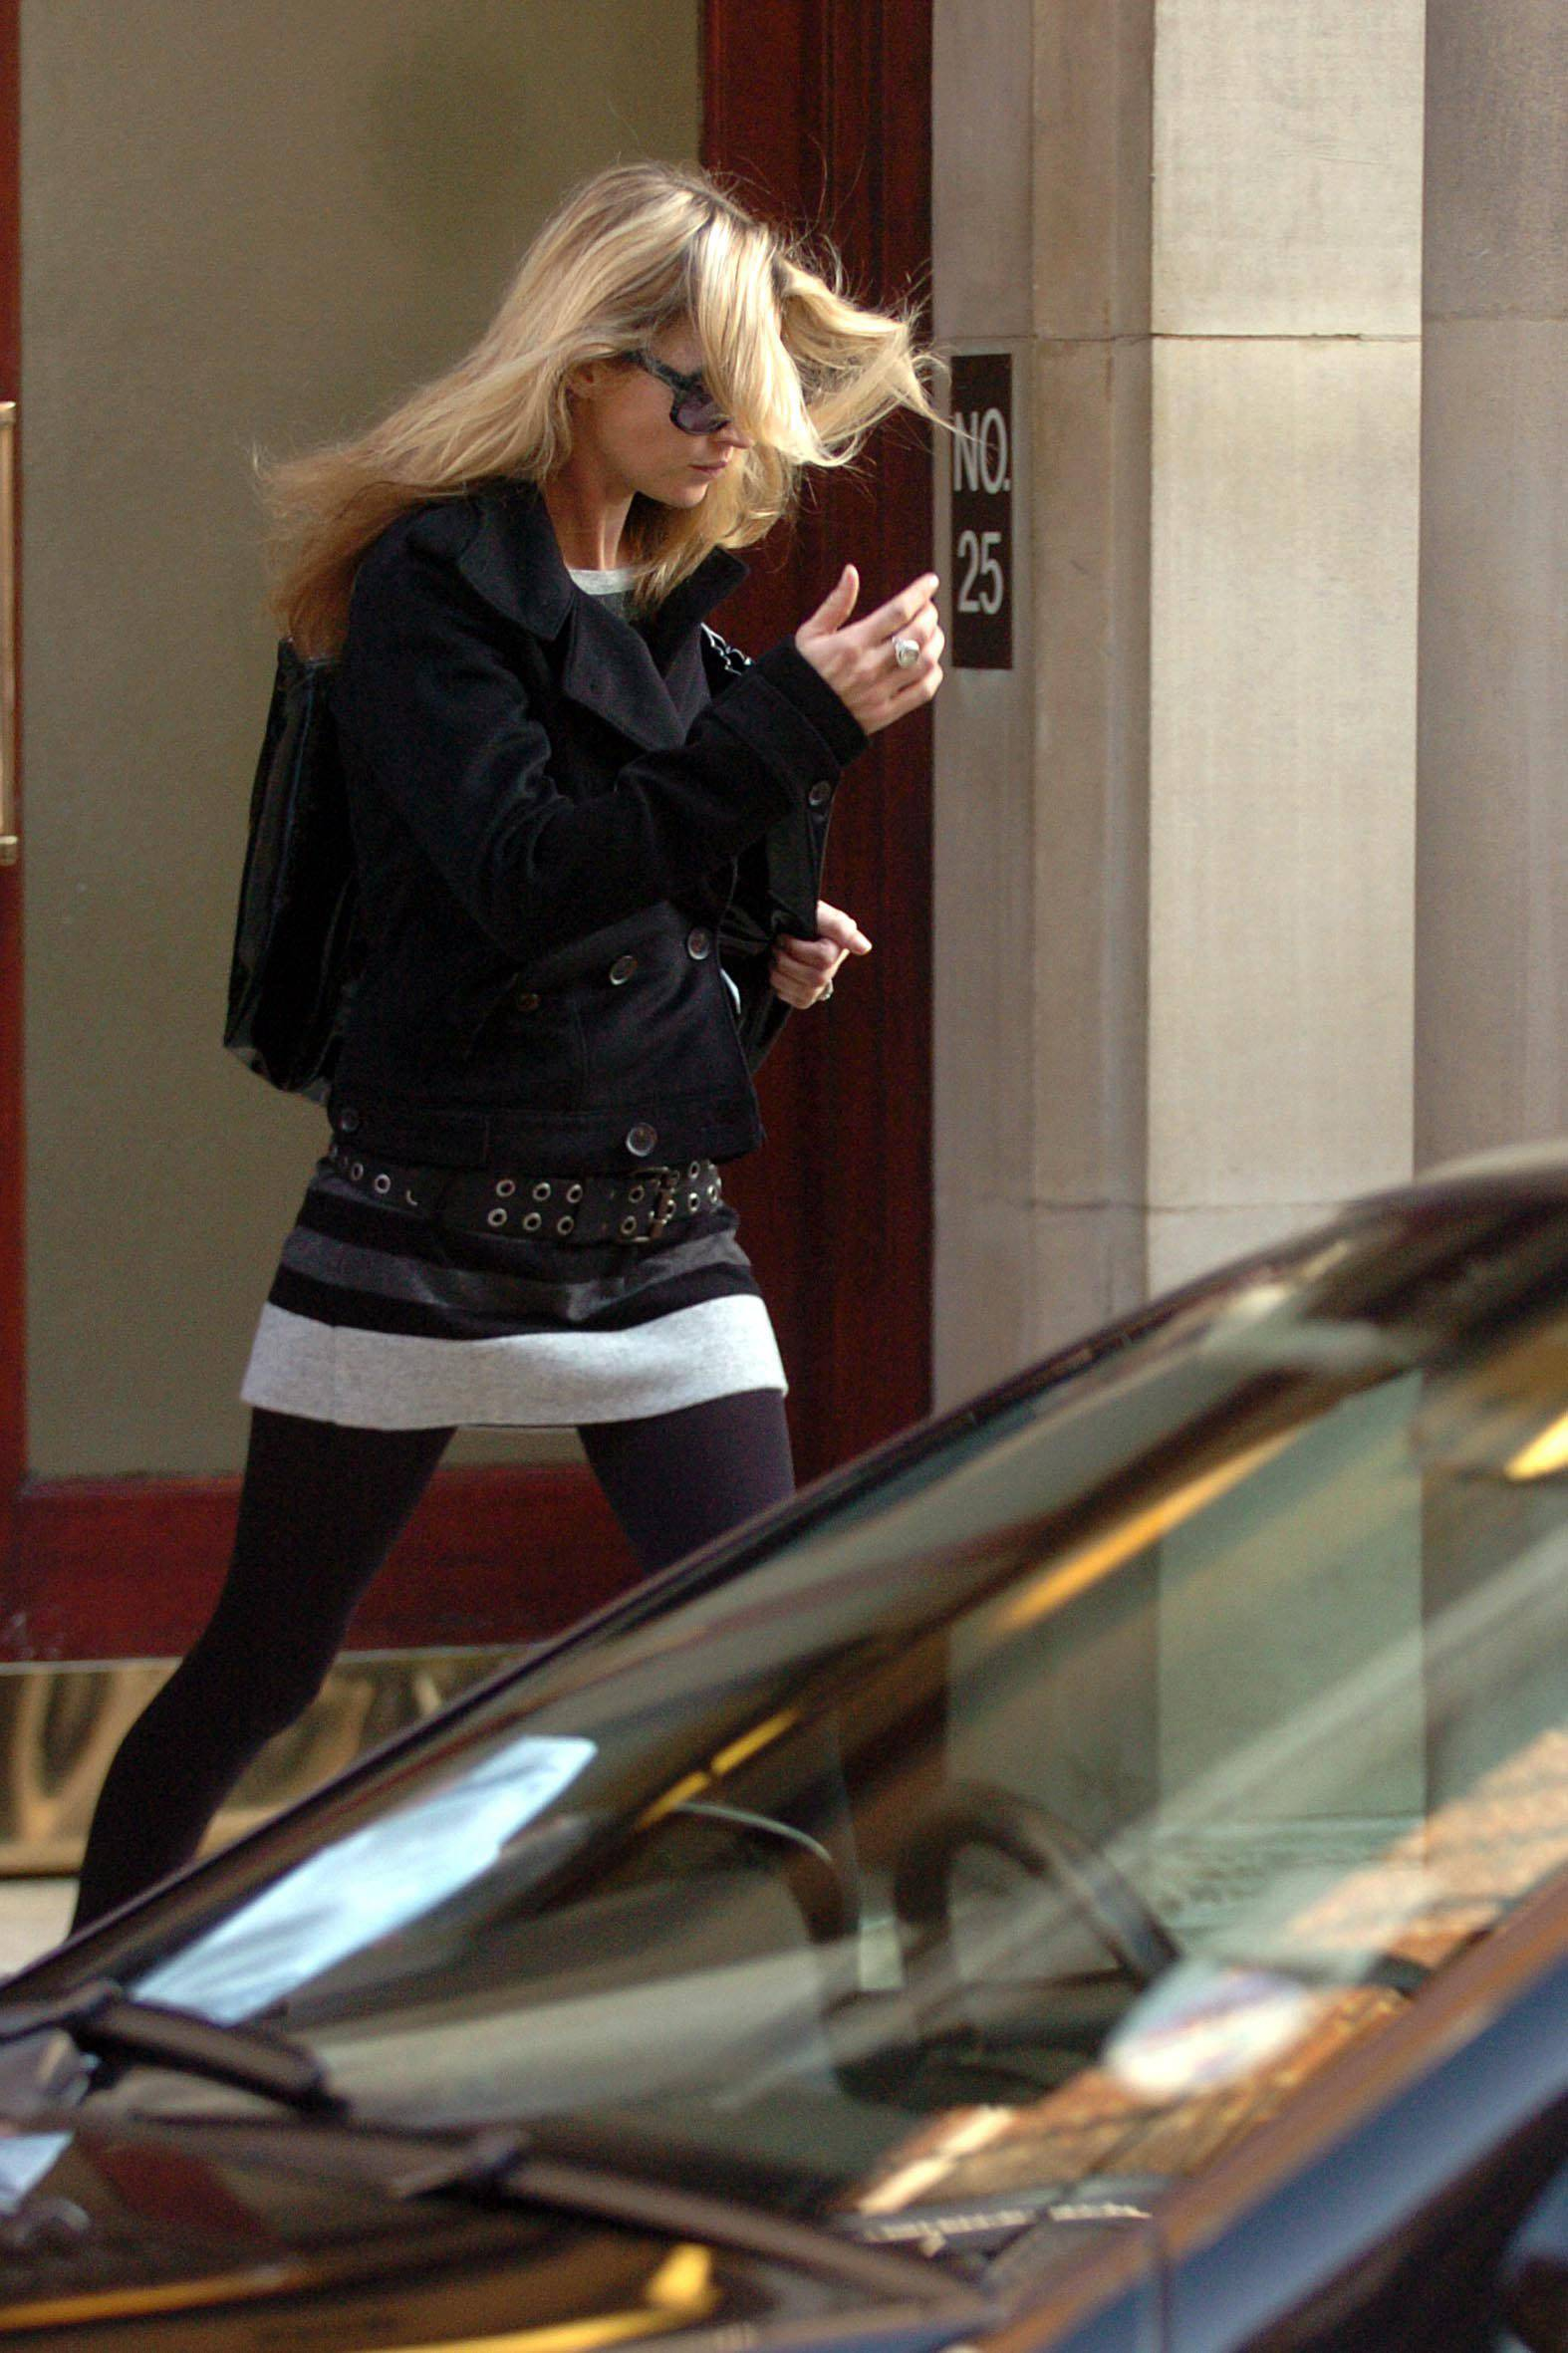 Kate_Moss_candid_shopping_Bond_Street_London_10-24-2006_07